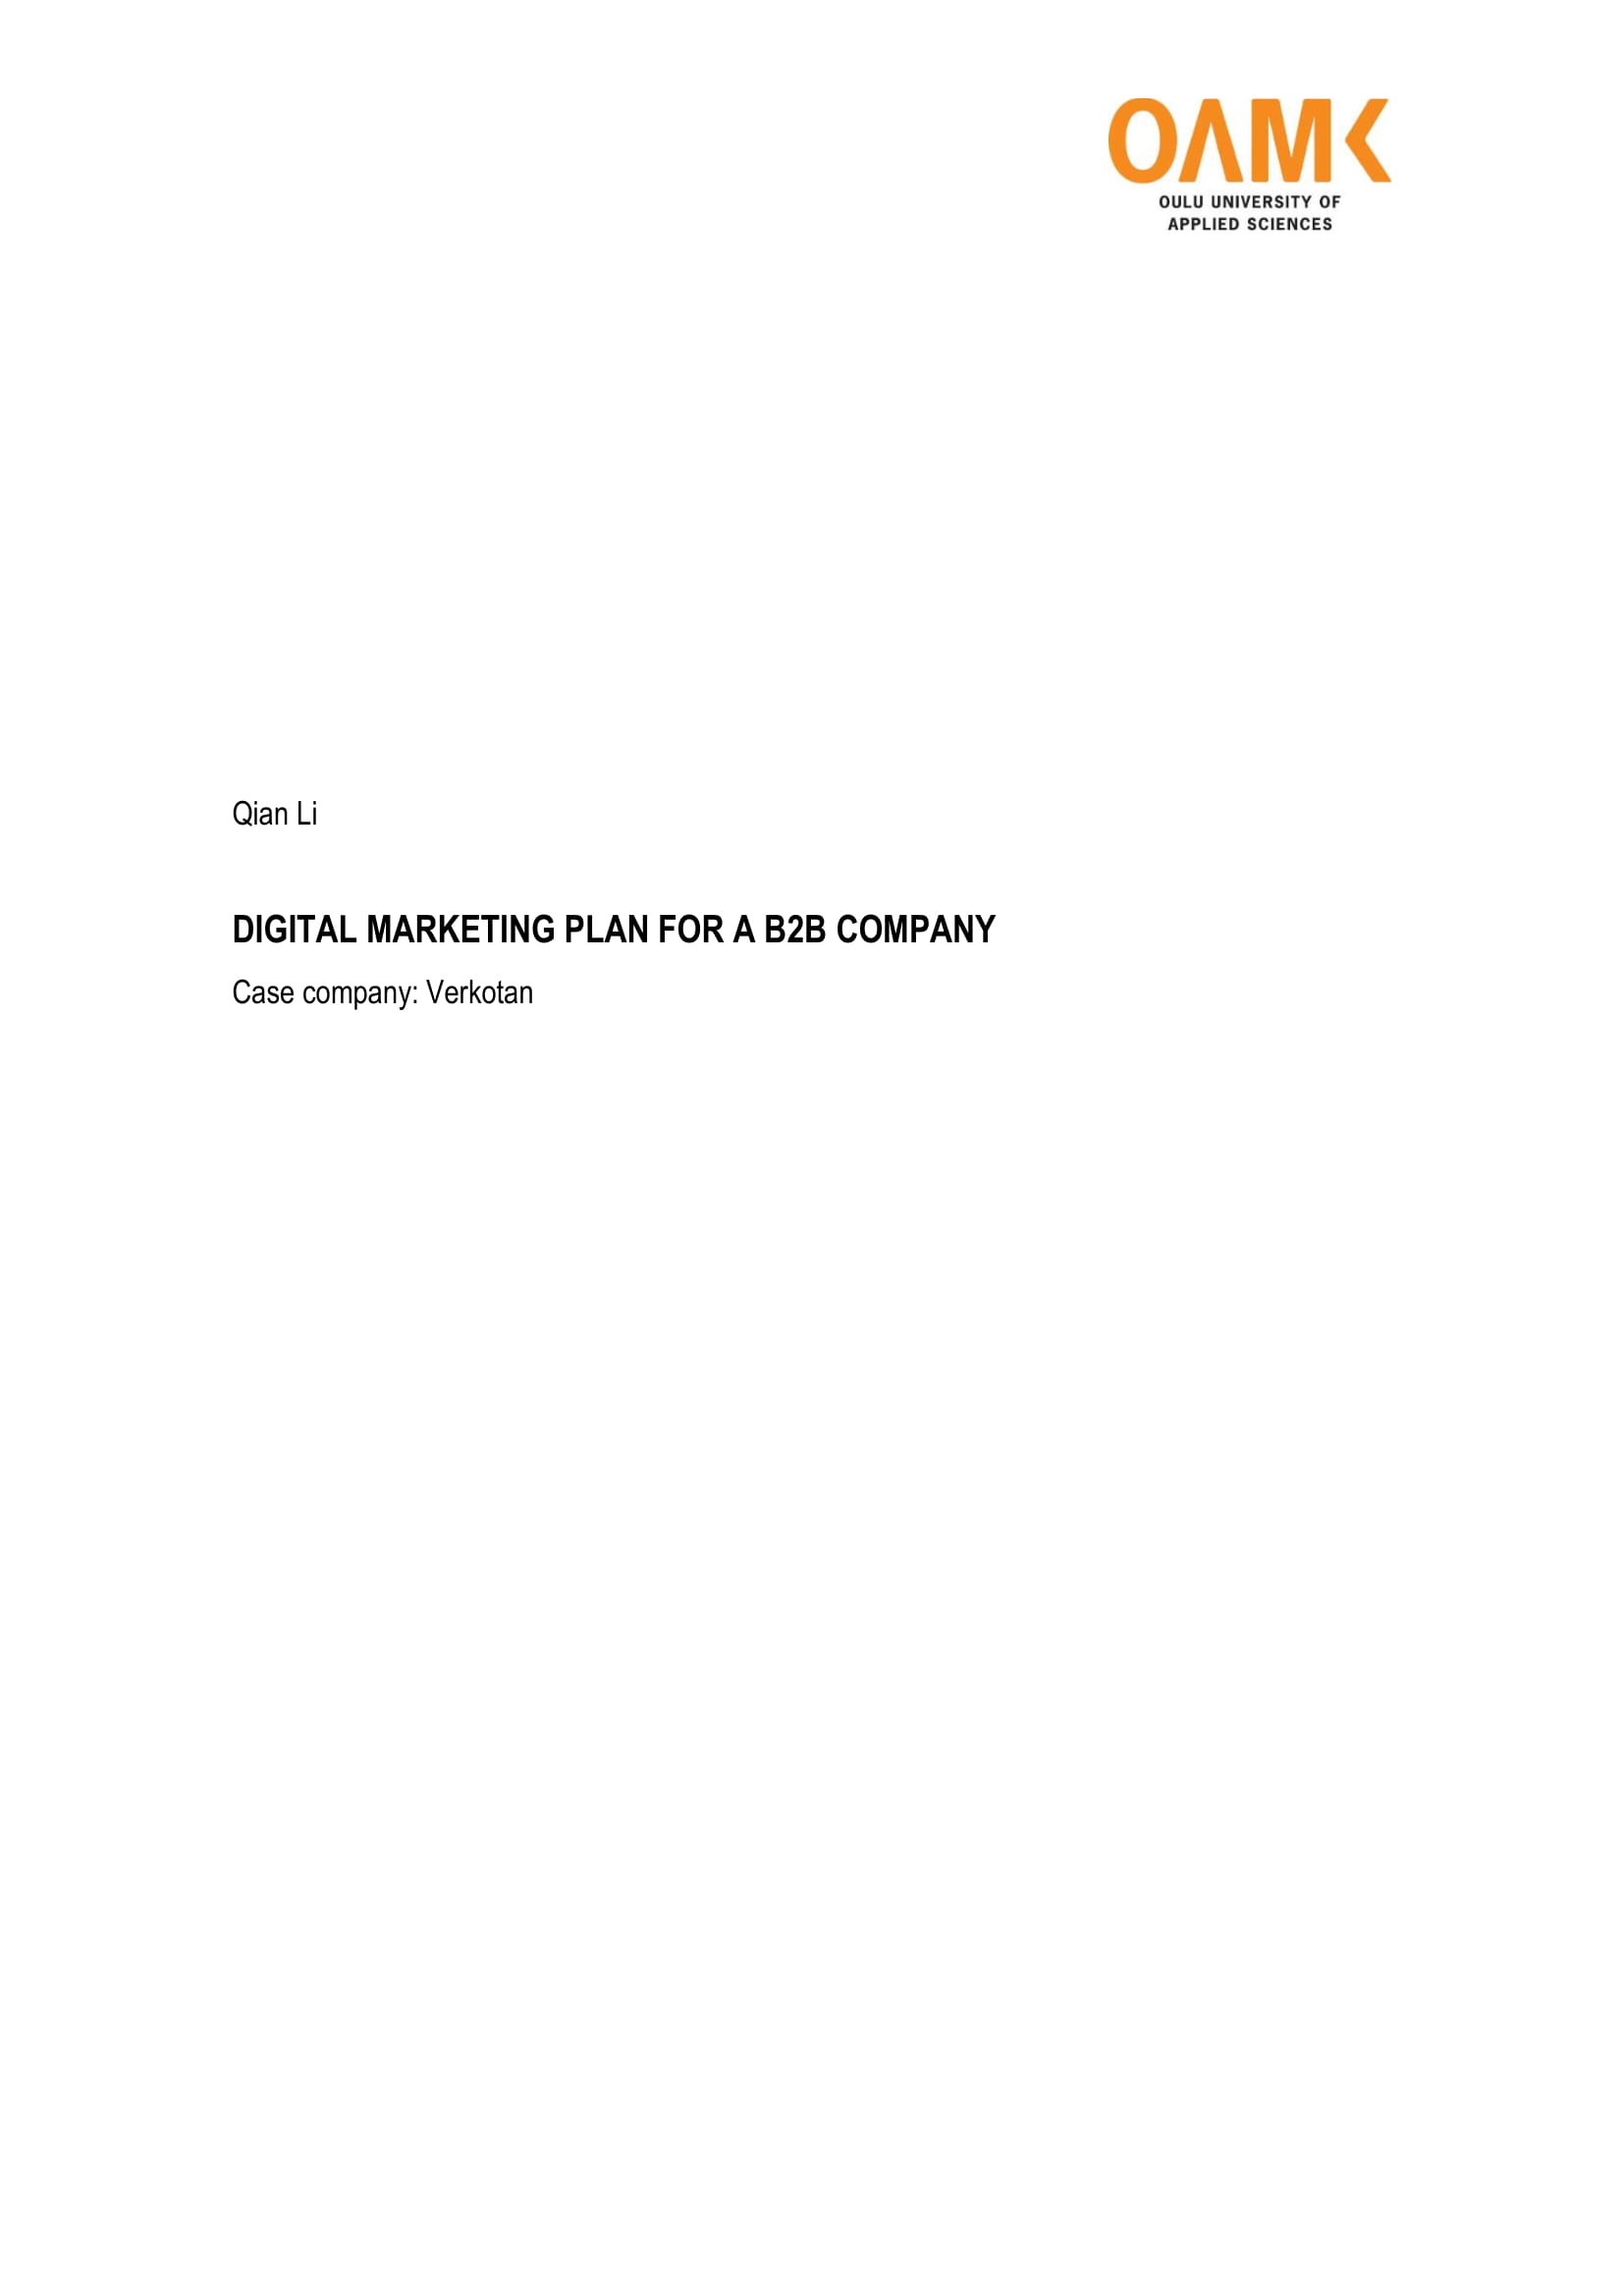 digital marketing plan for a b2b company example 01